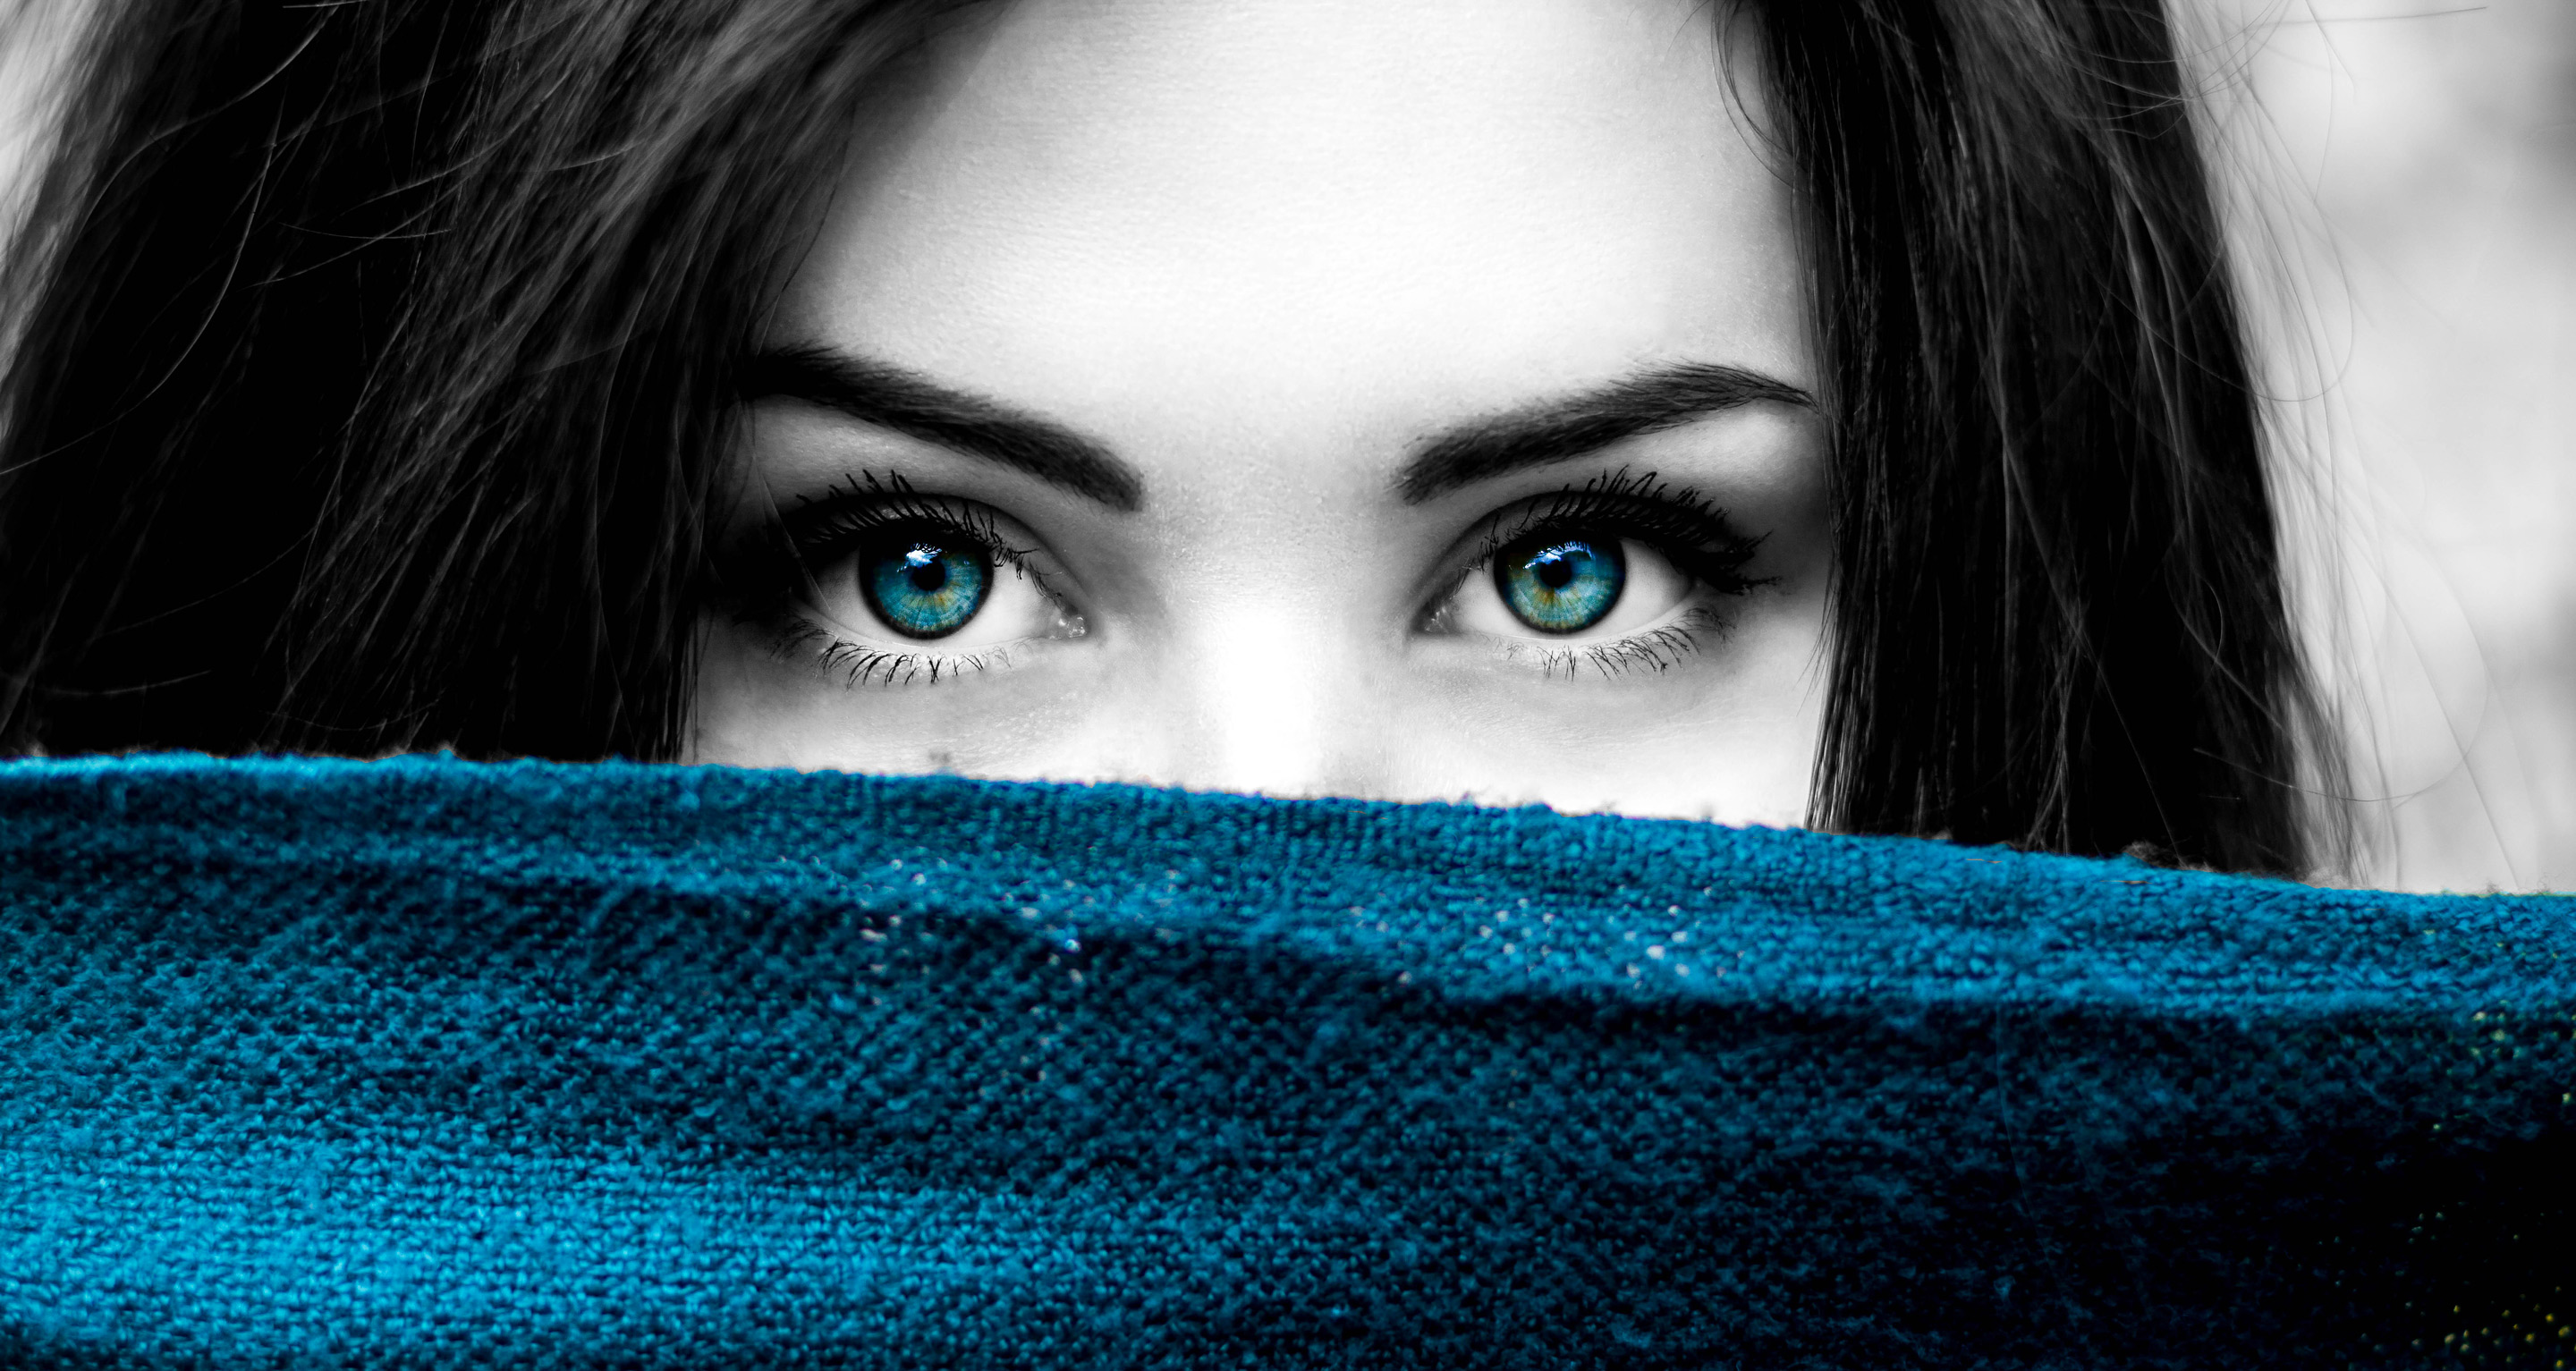 Close-Up Photo of Woman With Blue-Green Eyes